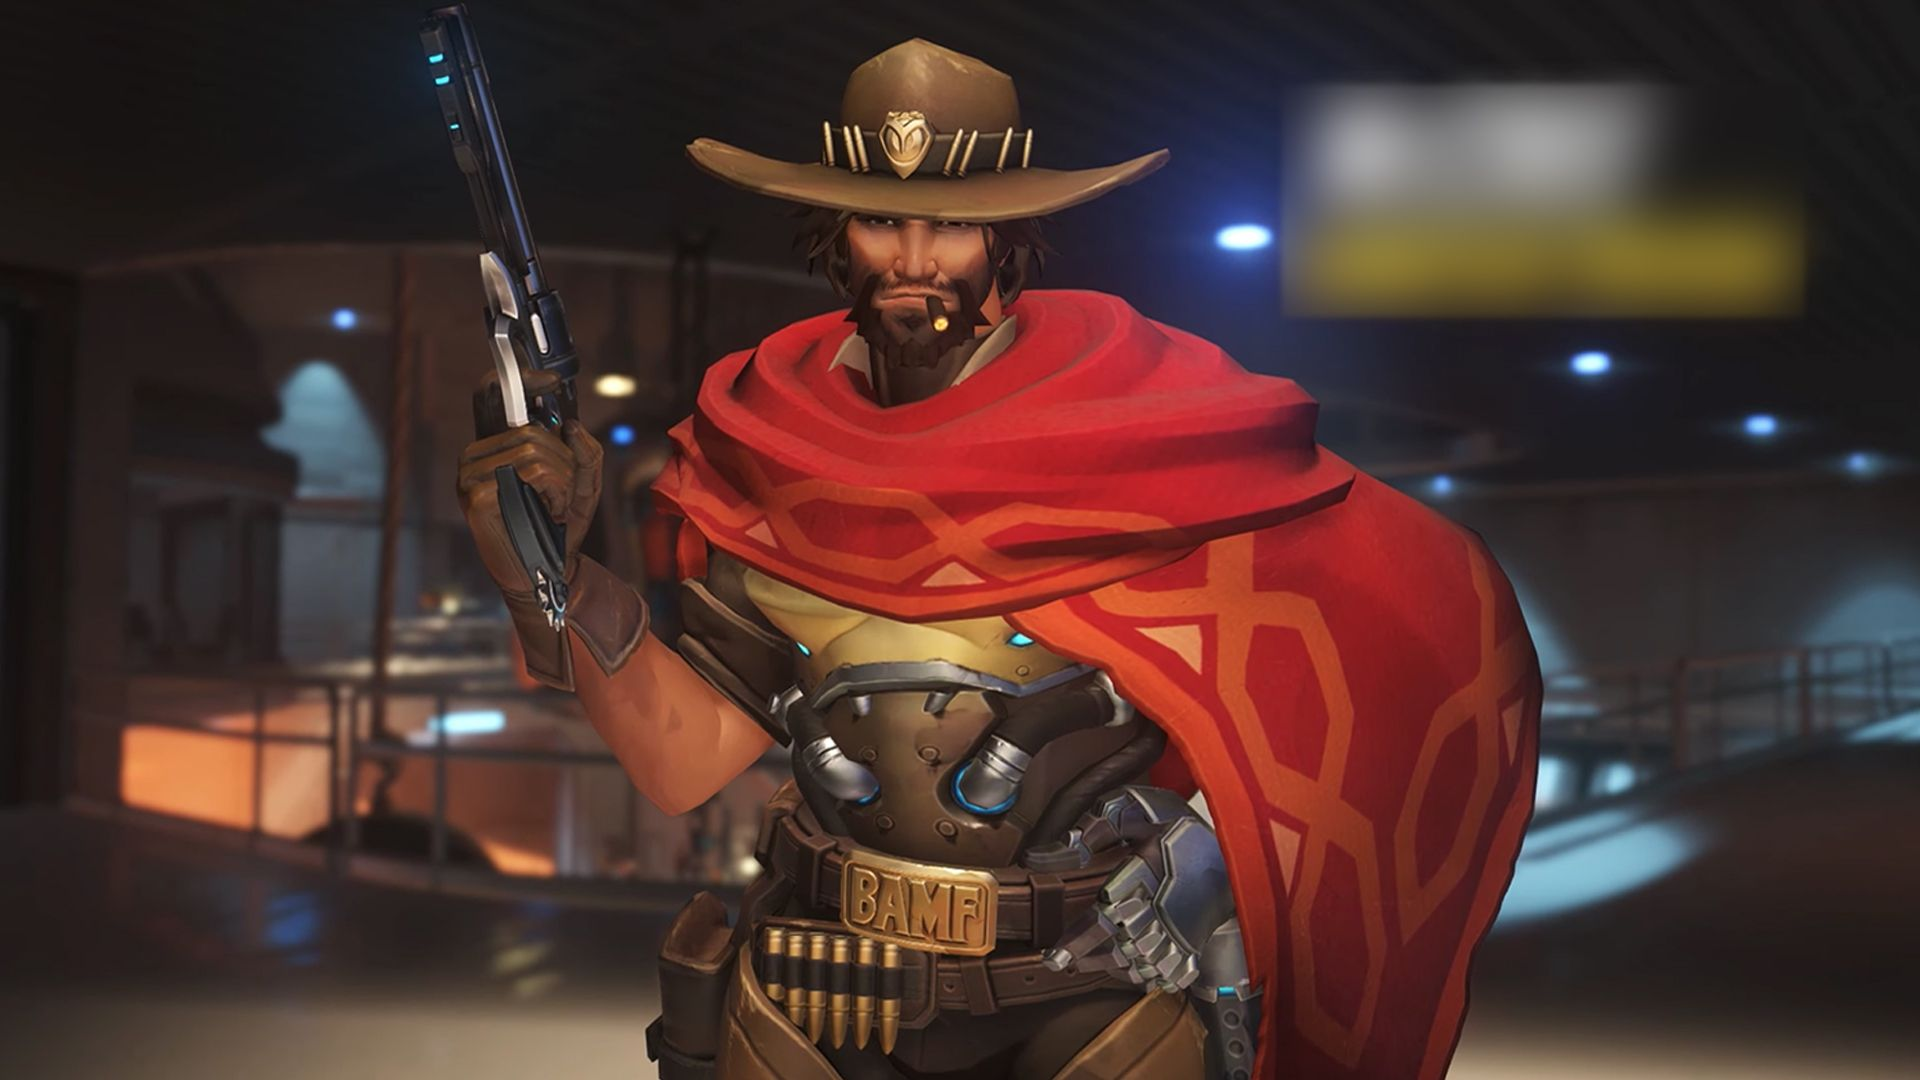 Howstuffworks: Can You Name These Overwatch Characters from a